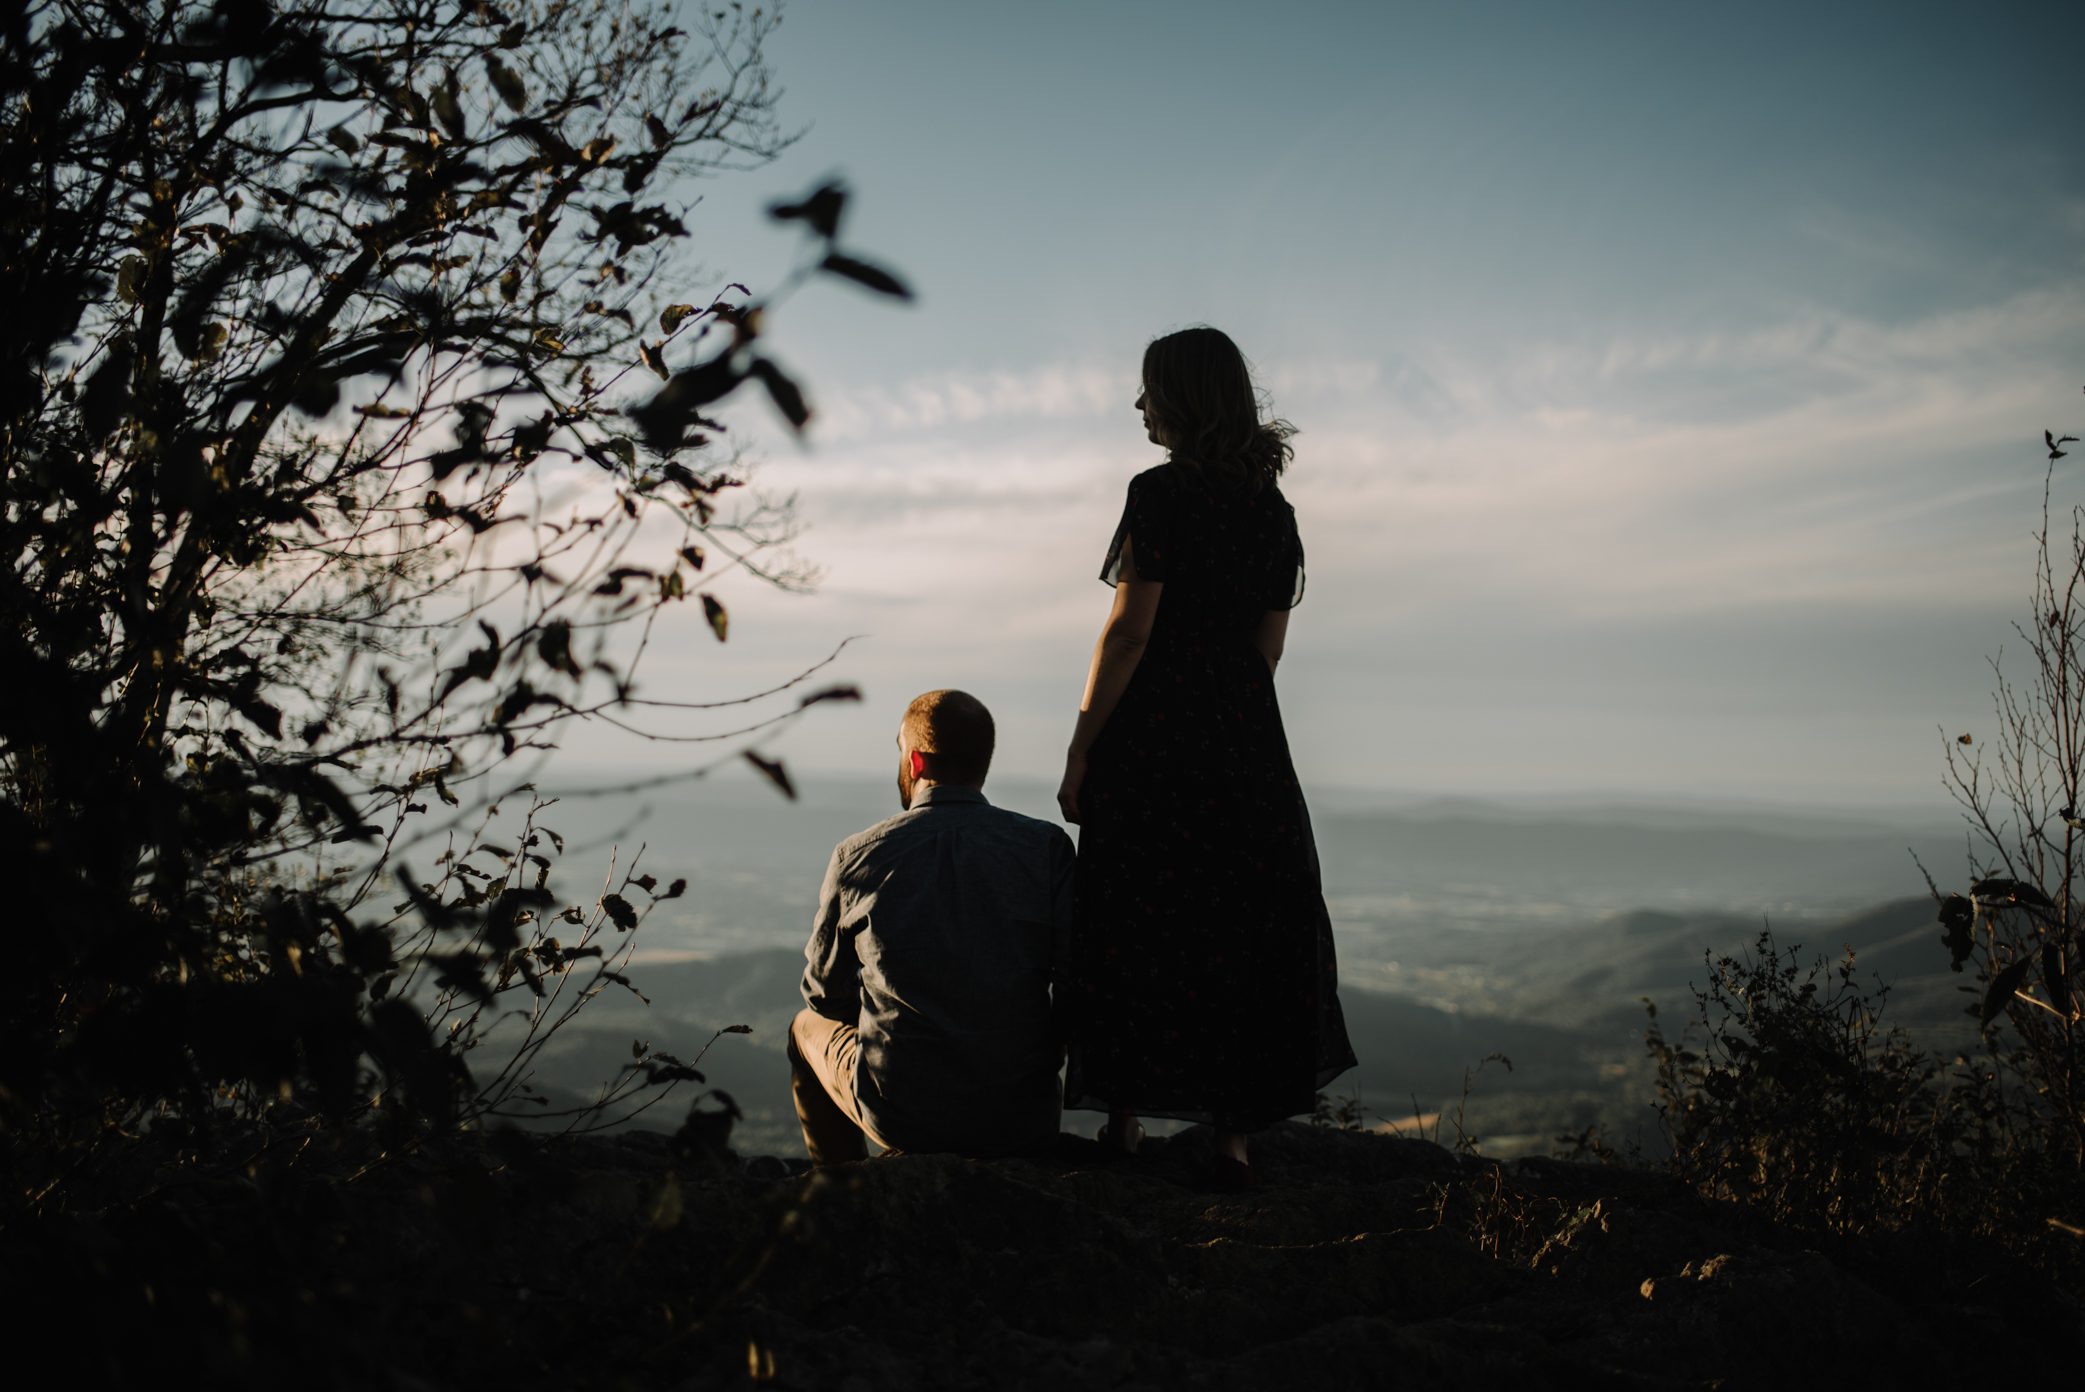 Molly and Zach Engagement Session - Fall Autumn Sunset Couple Adventure Session - Shenandoah National Park - Blue Ridge Parkway Skyline Drive - White Sails Creative_19.JPG